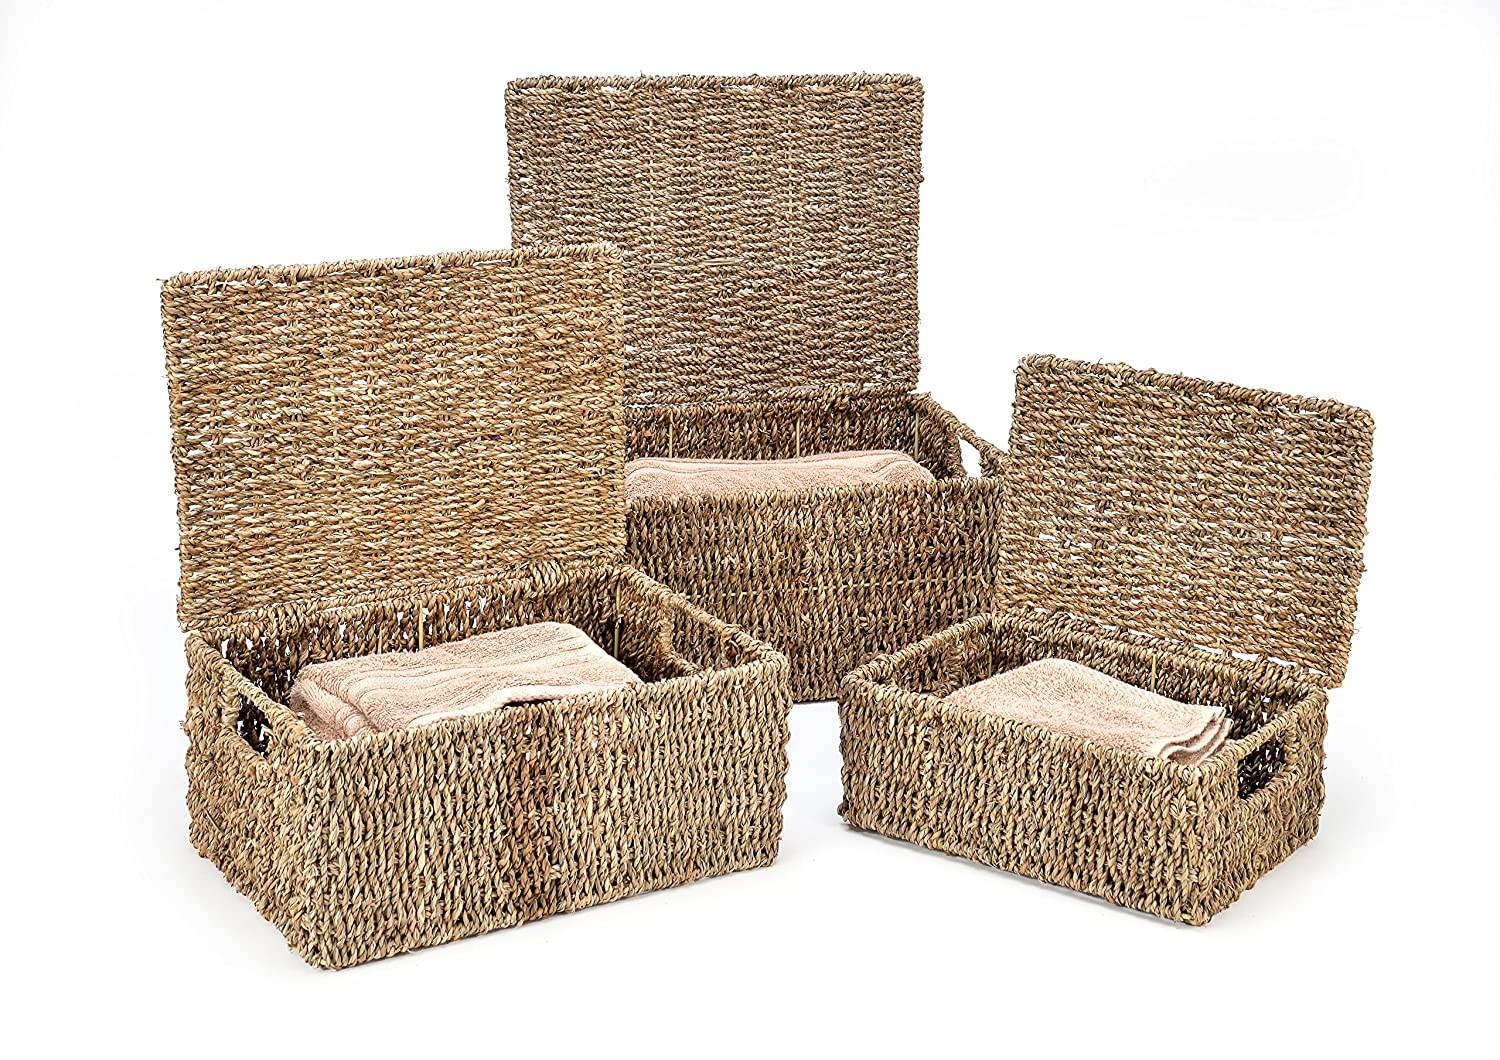 Trademark Innovations Rectangular Seagrass Baskets Lids (Set of 3), Brown